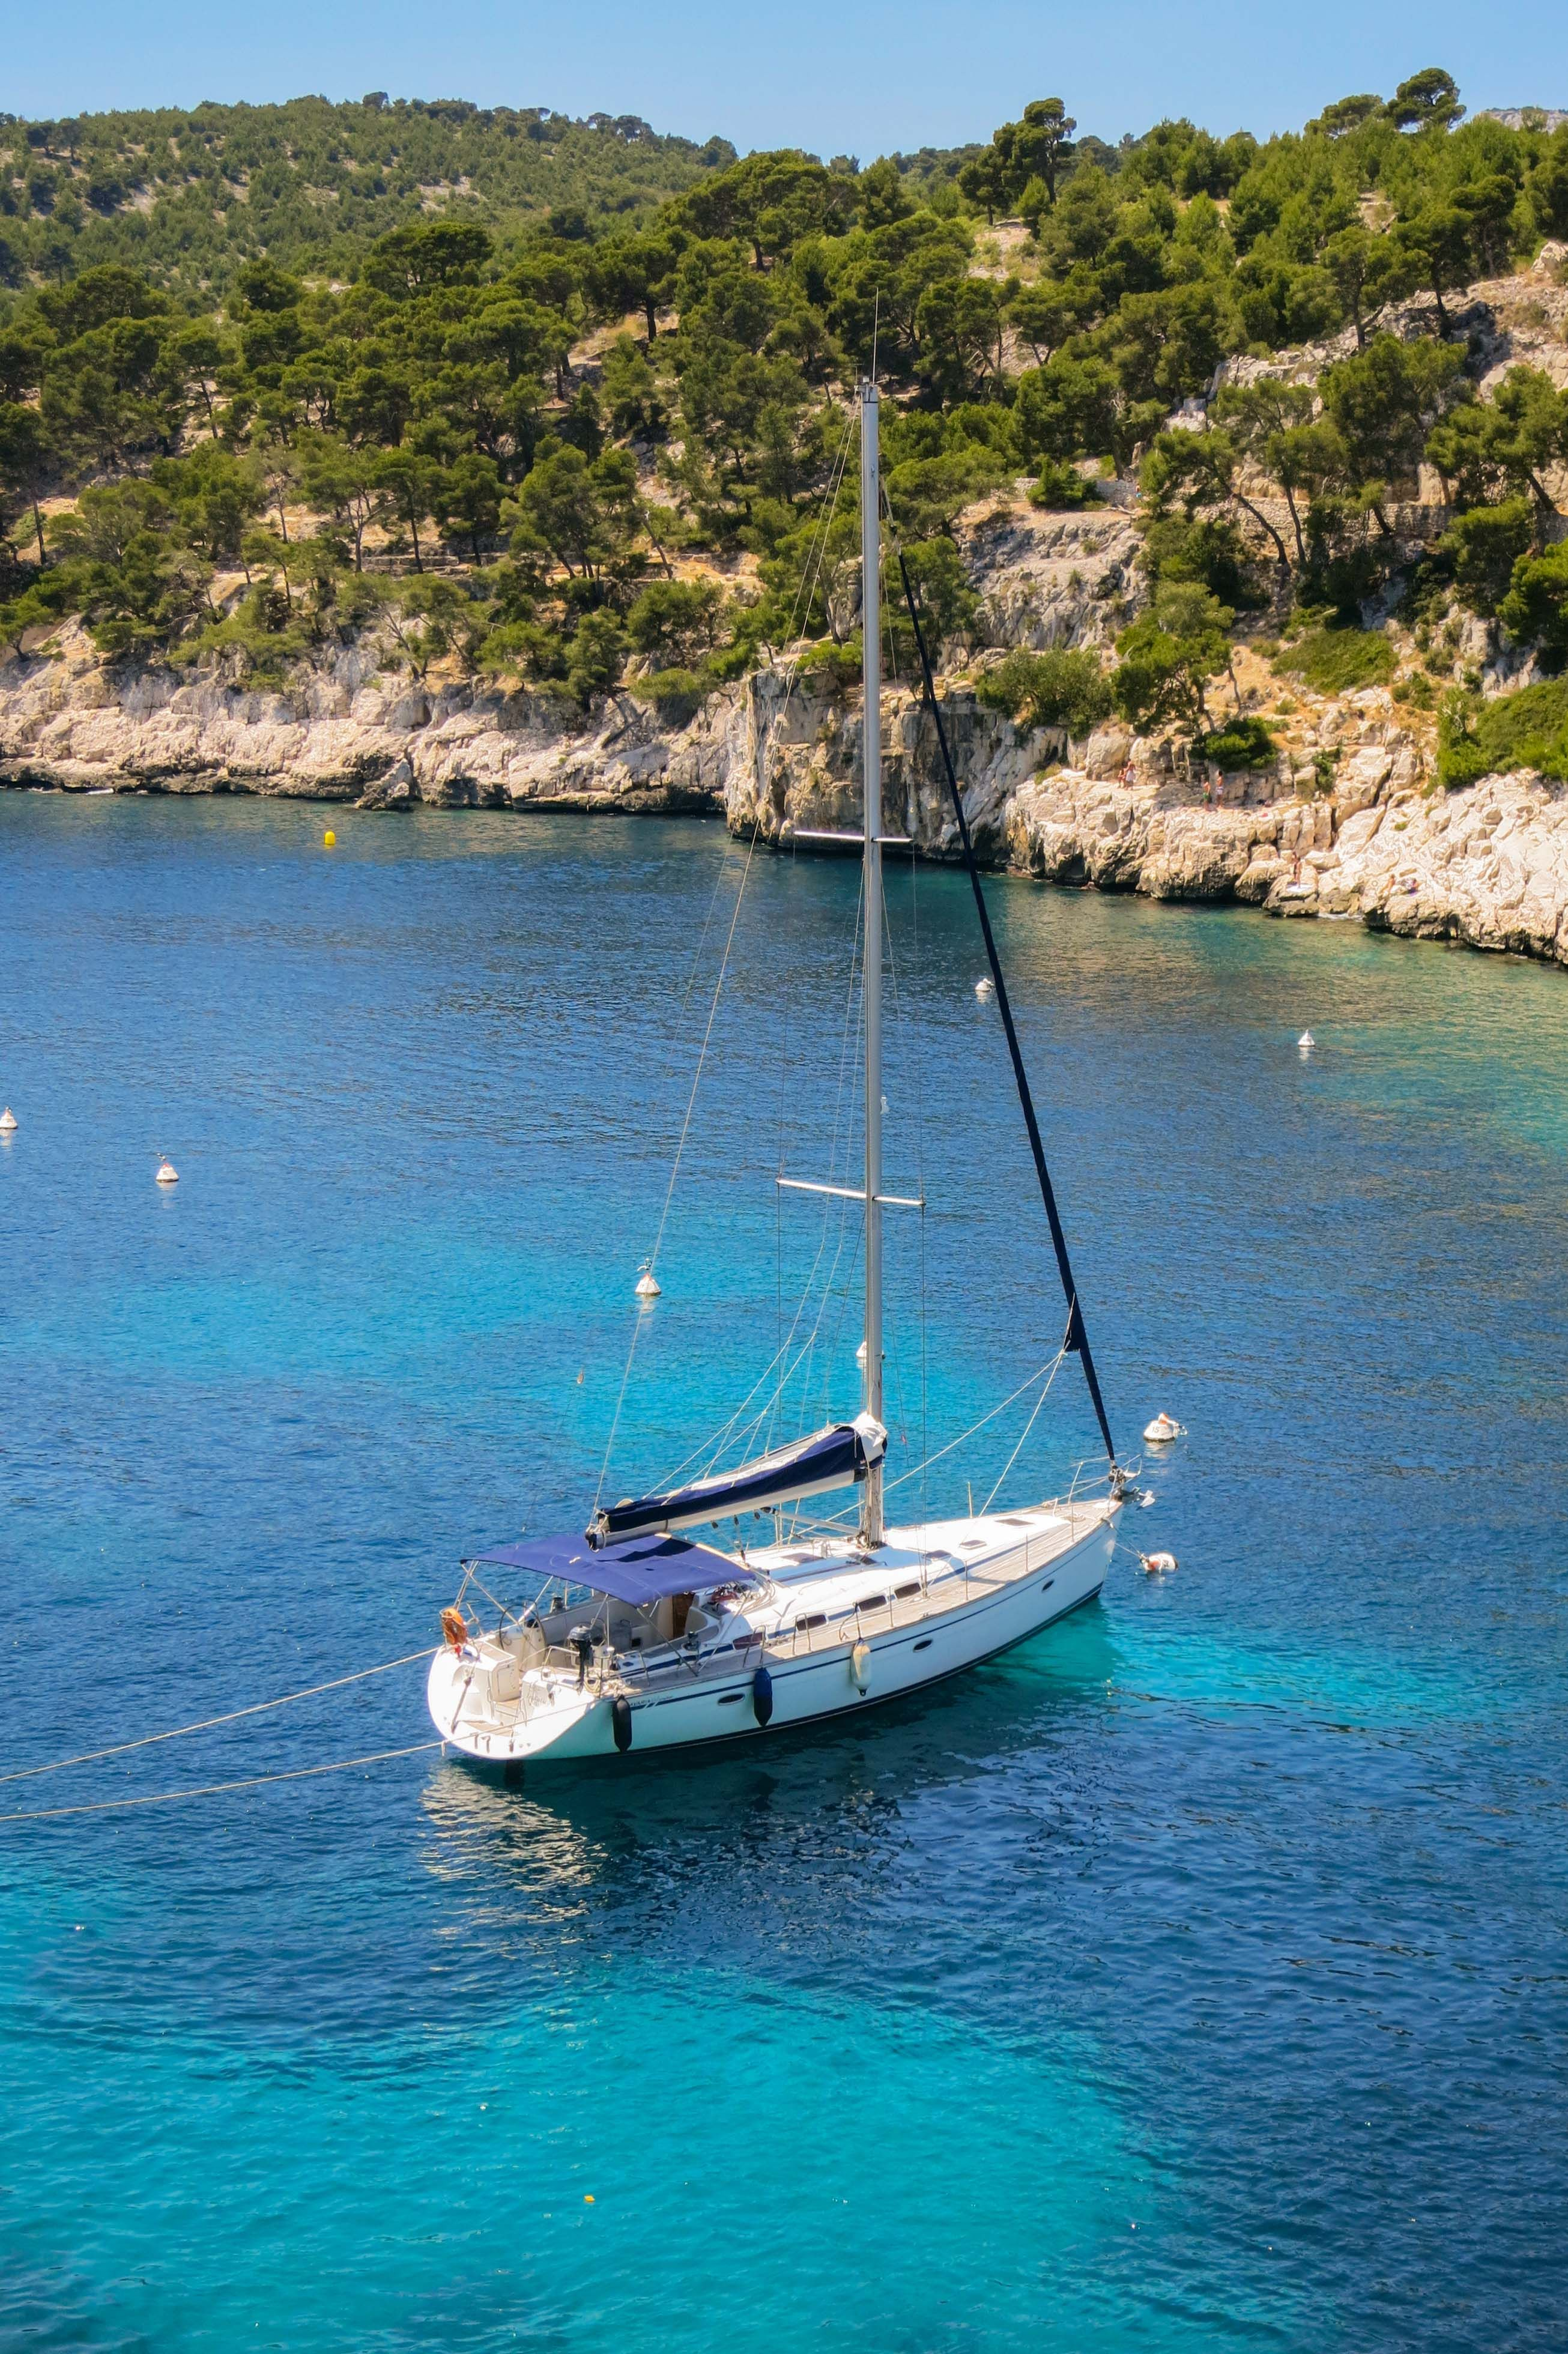 Location Canoe Cassis Port Pin Cassis France Sailing Pinterest France South Of